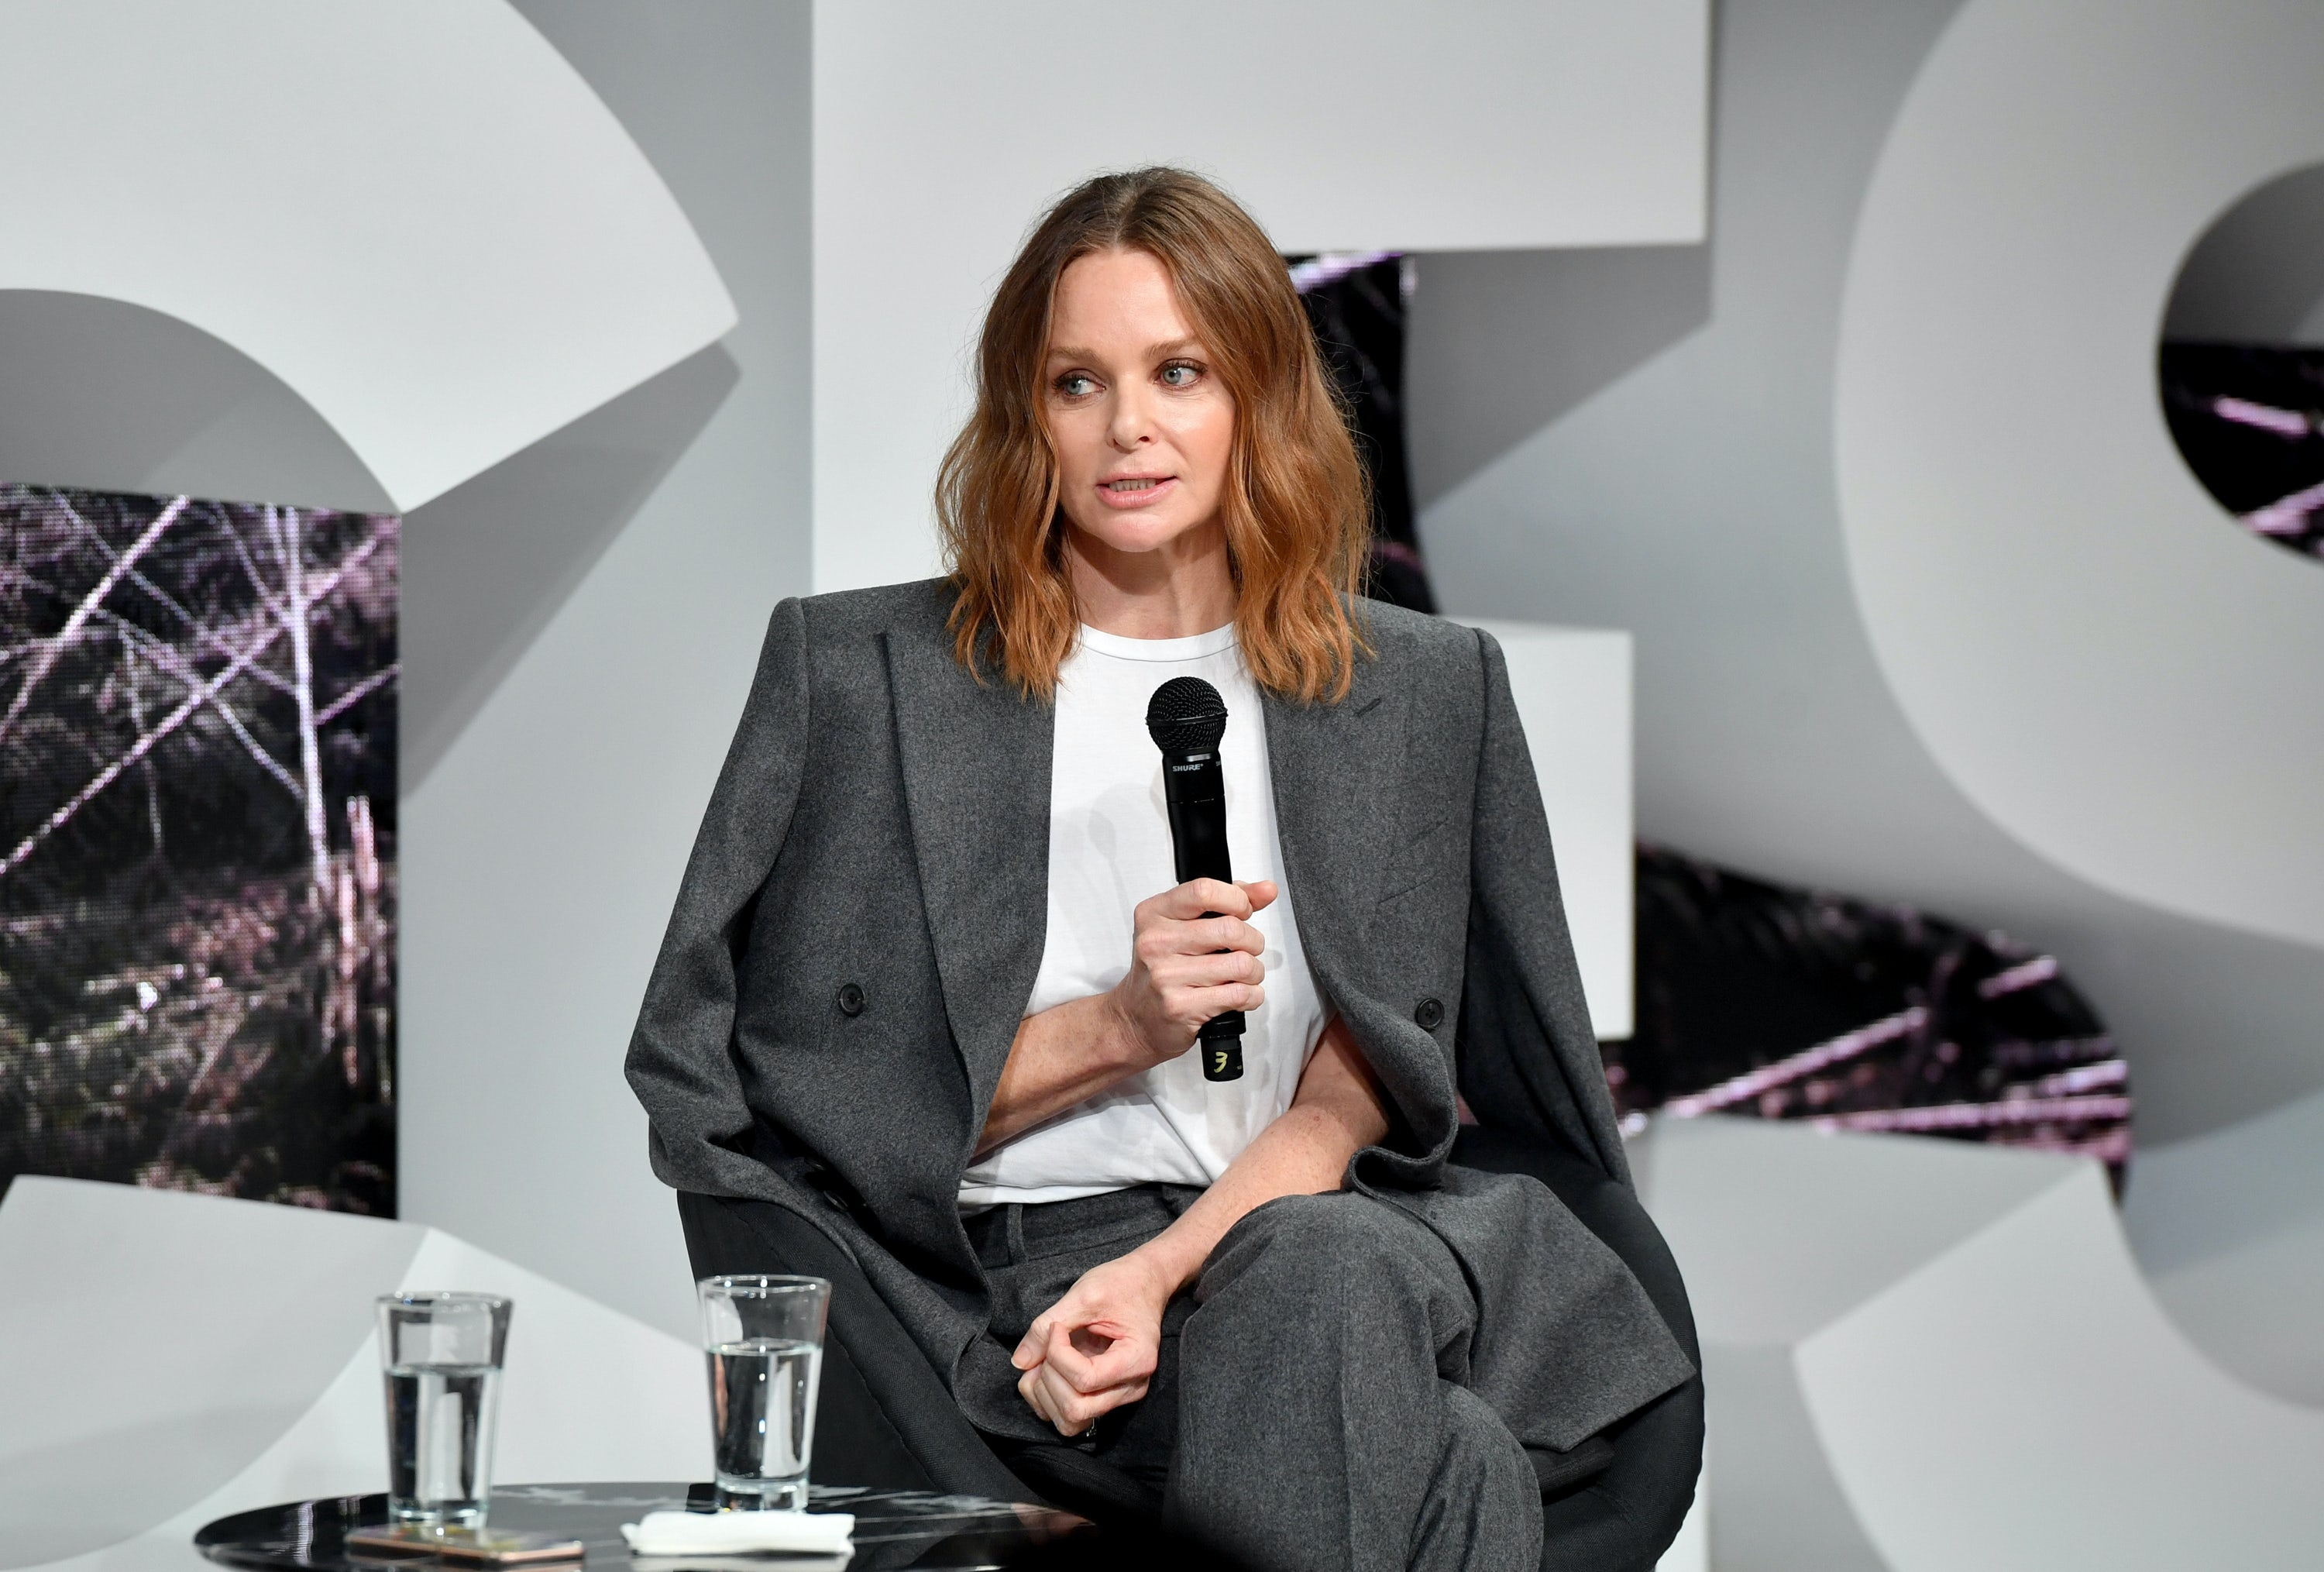 Stella McCartney speaks on stage during #BoFVOICES